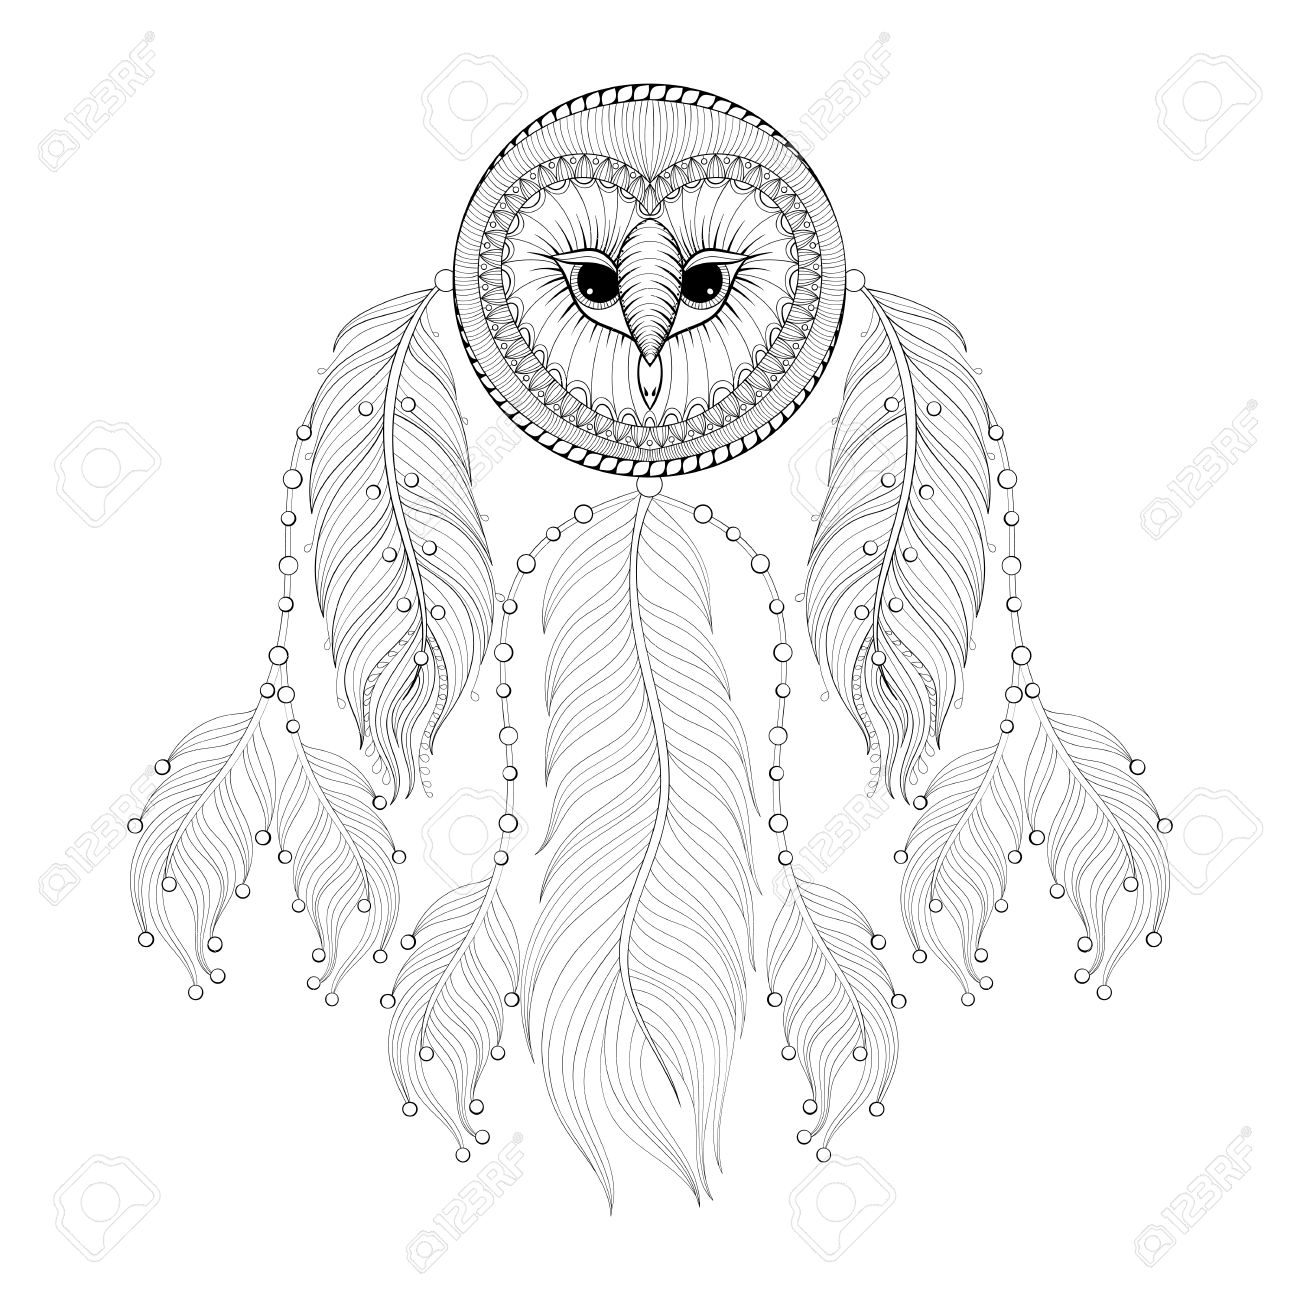 Hand Drawn Dreamcatcher With Tribal Owl Face For Adult Coloring Pages Post Card T